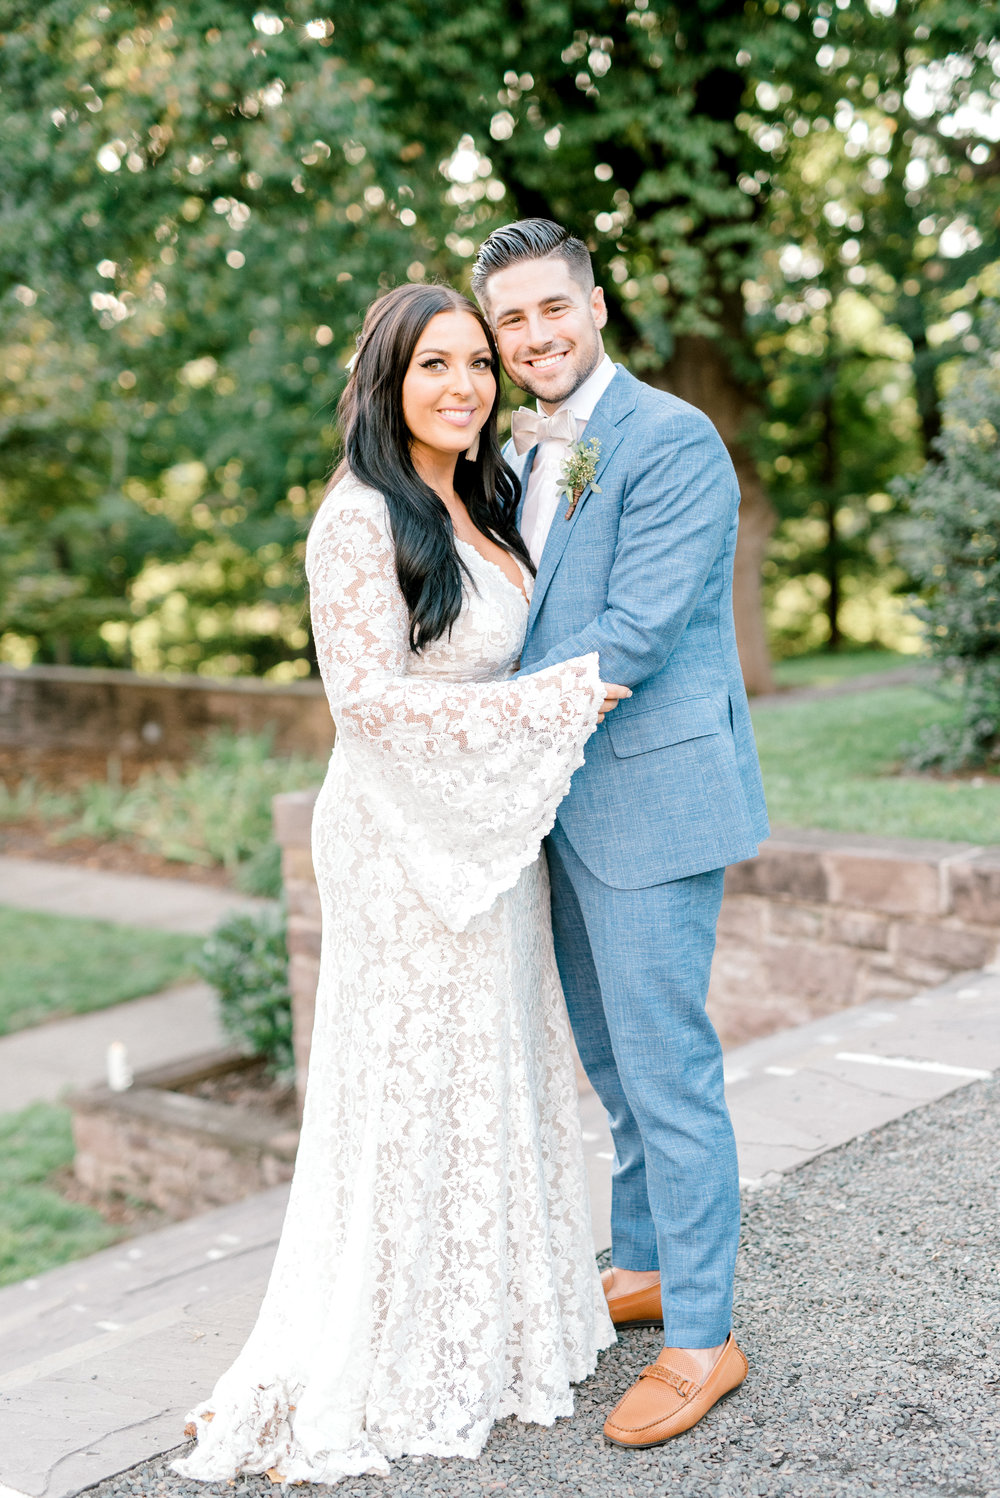 We got all the hippy vibes from this bell sleeved BHLDN gown paired with this light blue suit from this bright boho chic Tyler Gardens wedding in Bucks County